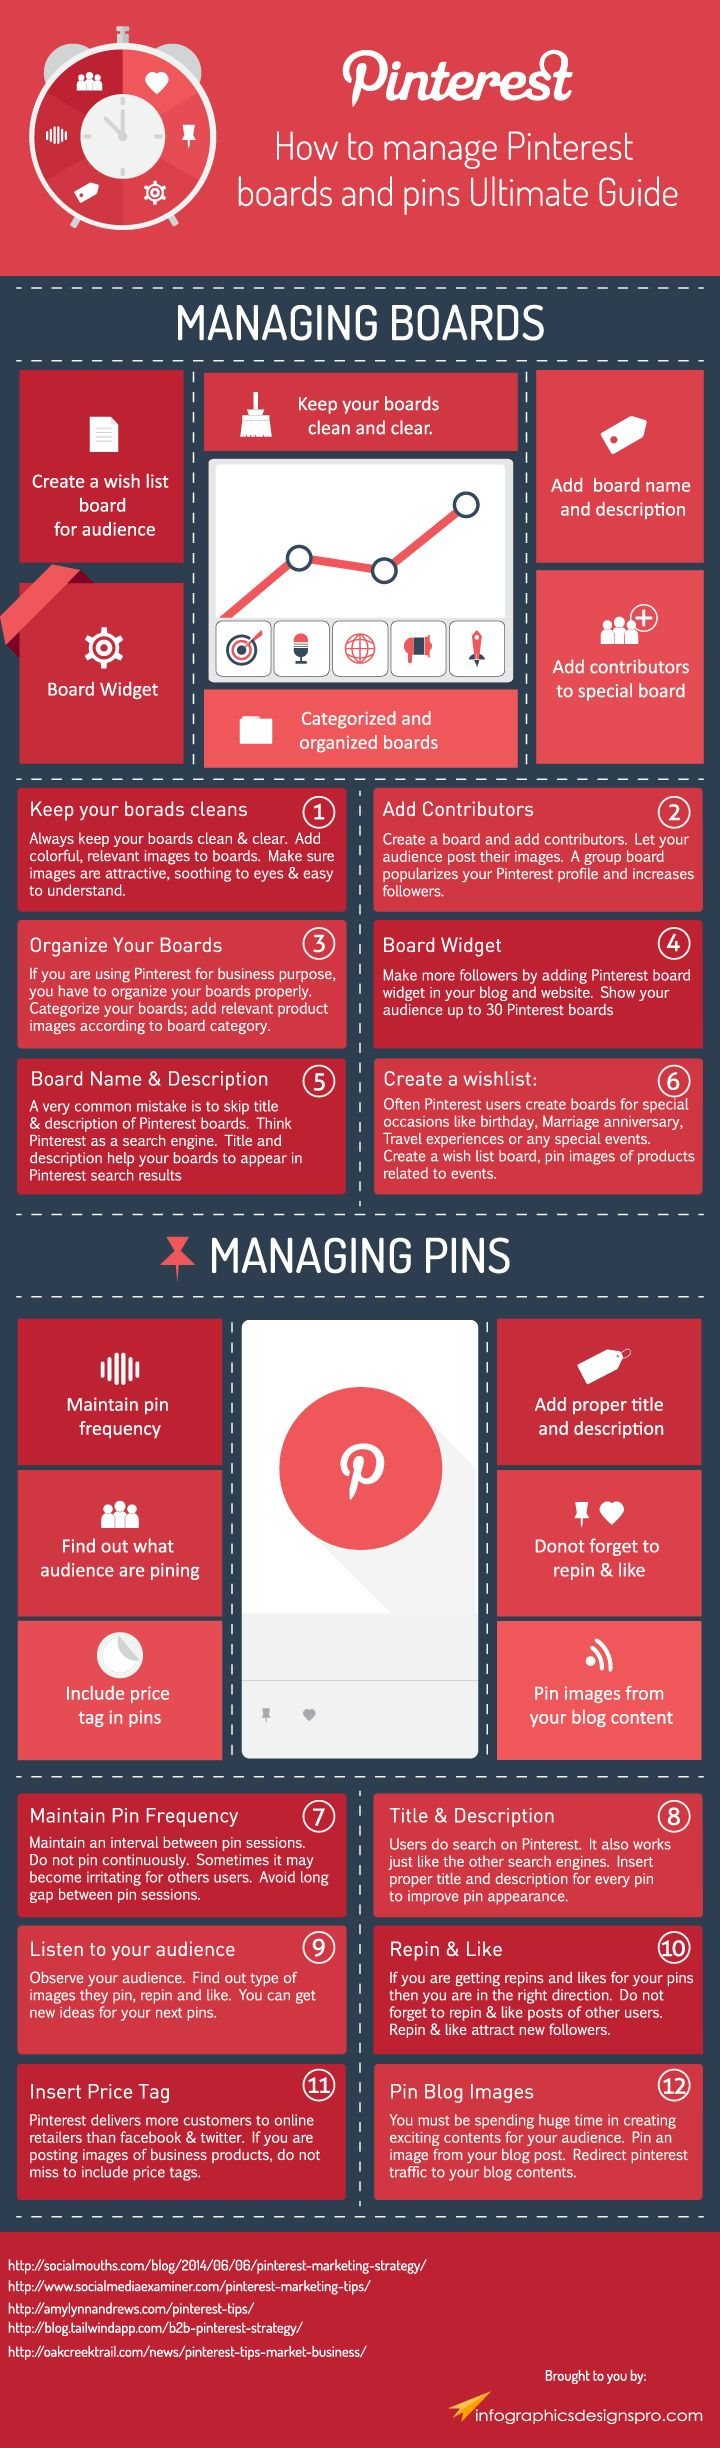 How to manage #Pinterest boards and pins Ultimate guide -  #infographic #socialmedia